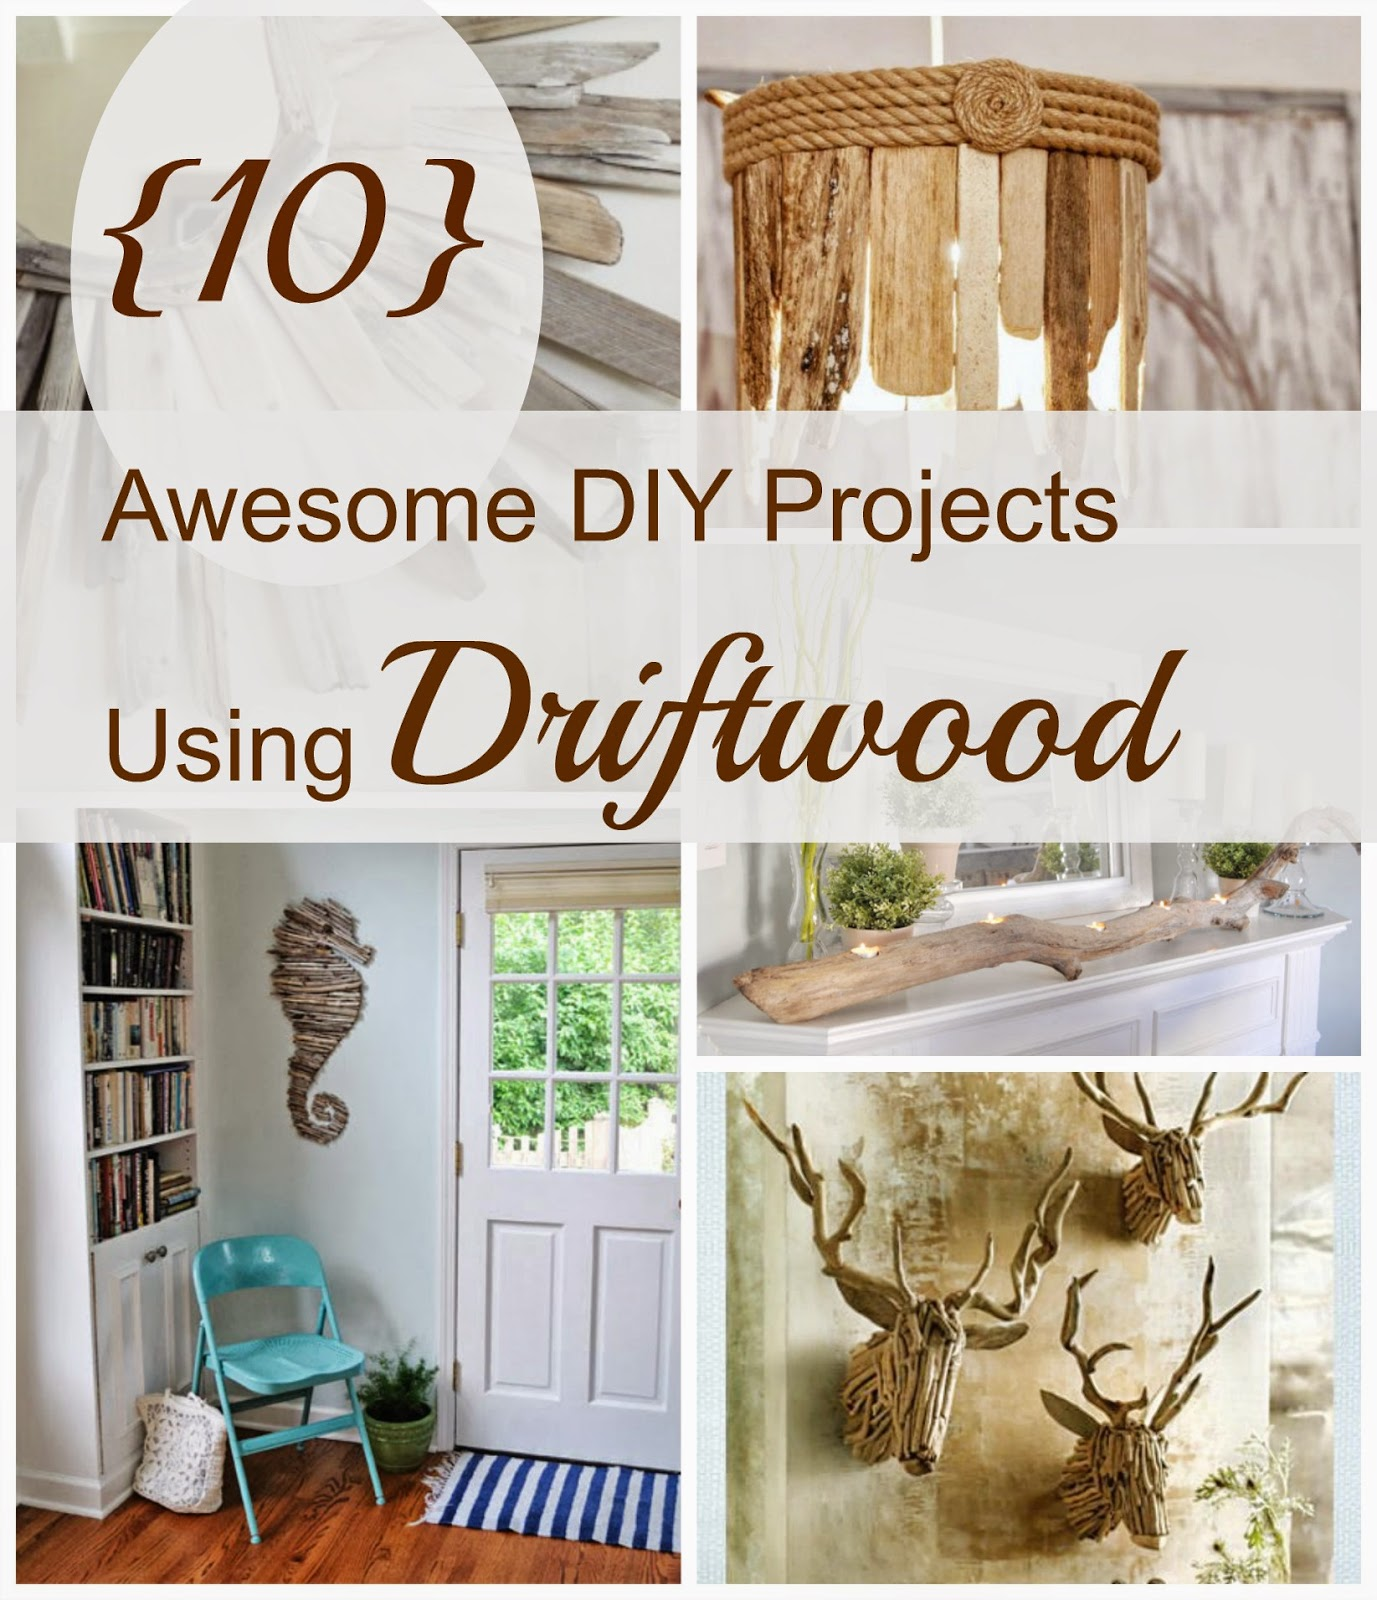 House Revivals: 10 Awesome Driftwood Decorations!